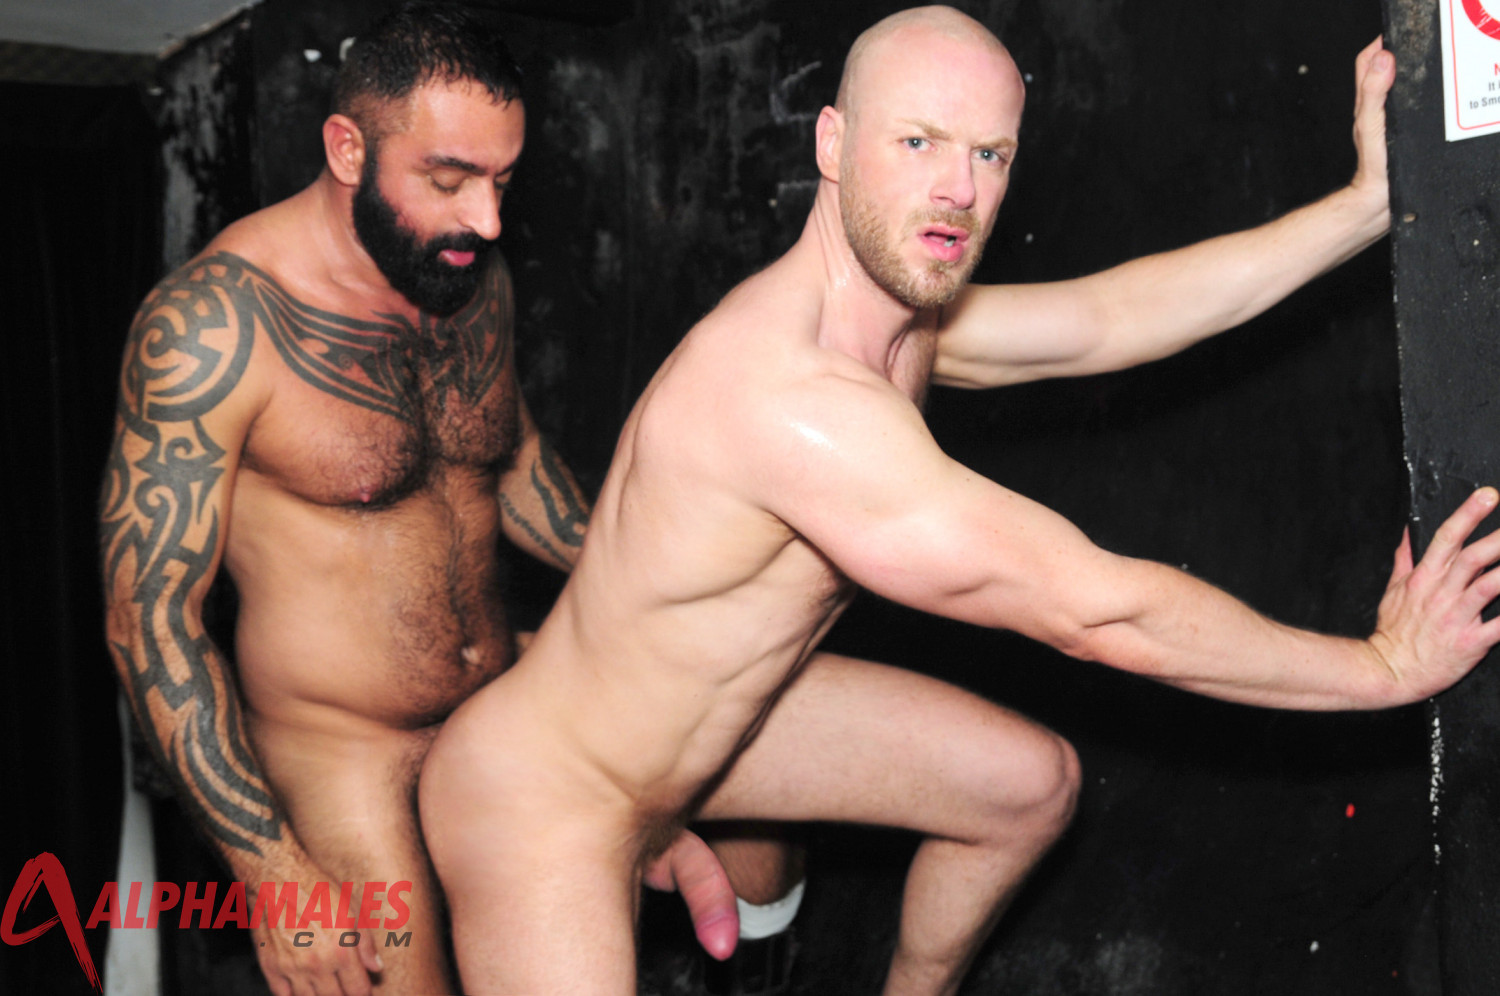 Alphamales Nathan Price and Tom Colt fucking 08 Amateur Tattoo Hairy Muscle Man Fucks a Hot Sex Pig in the Club Toilet